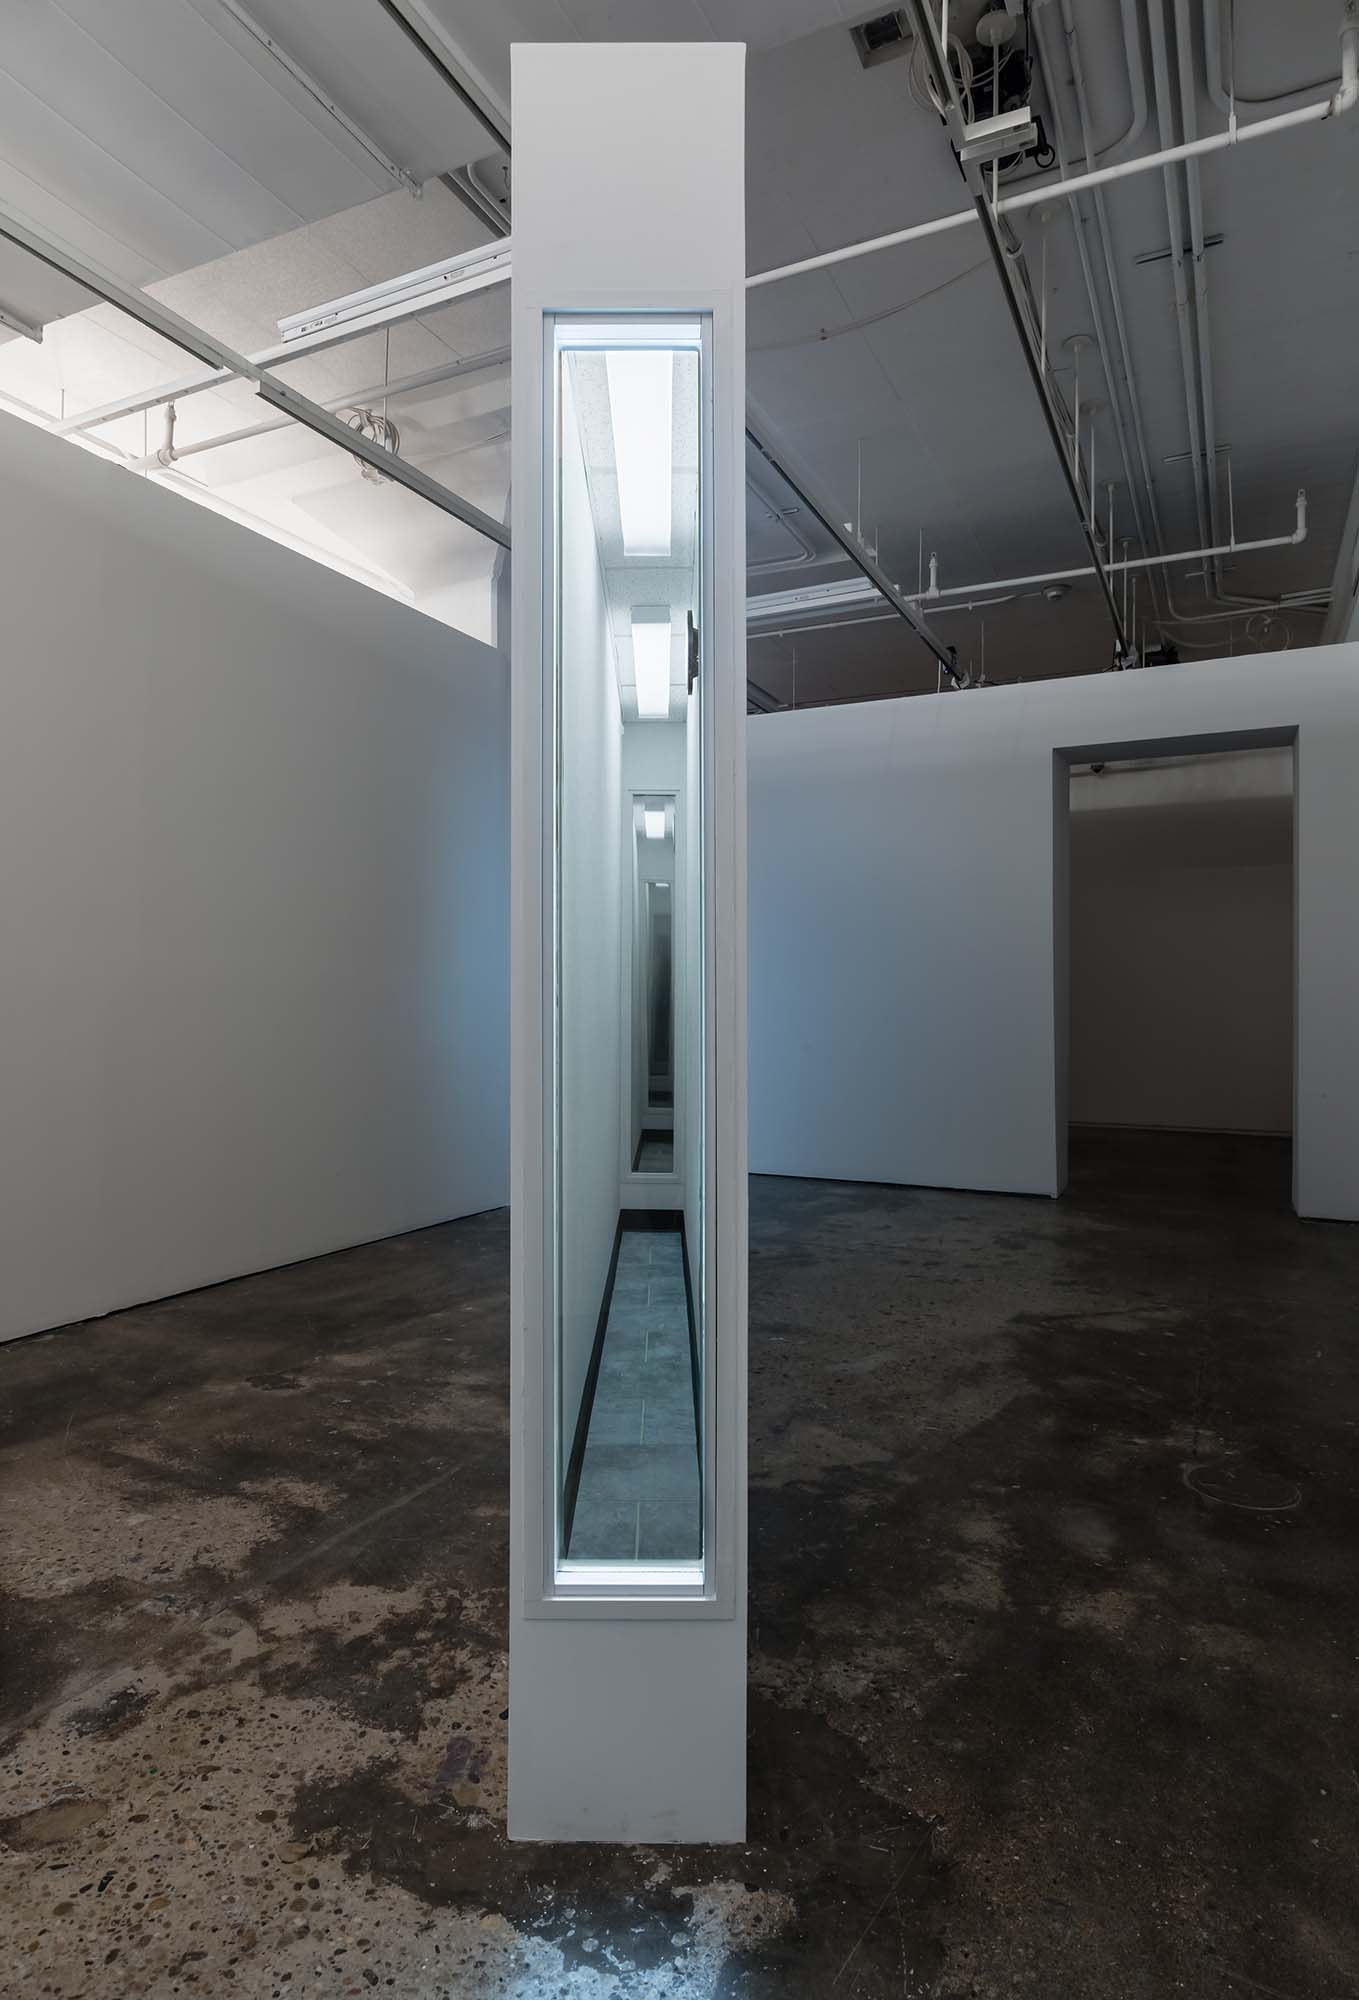 "Zac Hacmon, Title: Capsule (2018) Media: Ceiling tiles, wood, aluminum, glass, plastic tiles, clock Dimensions: 13"" x 96"" x 108"""